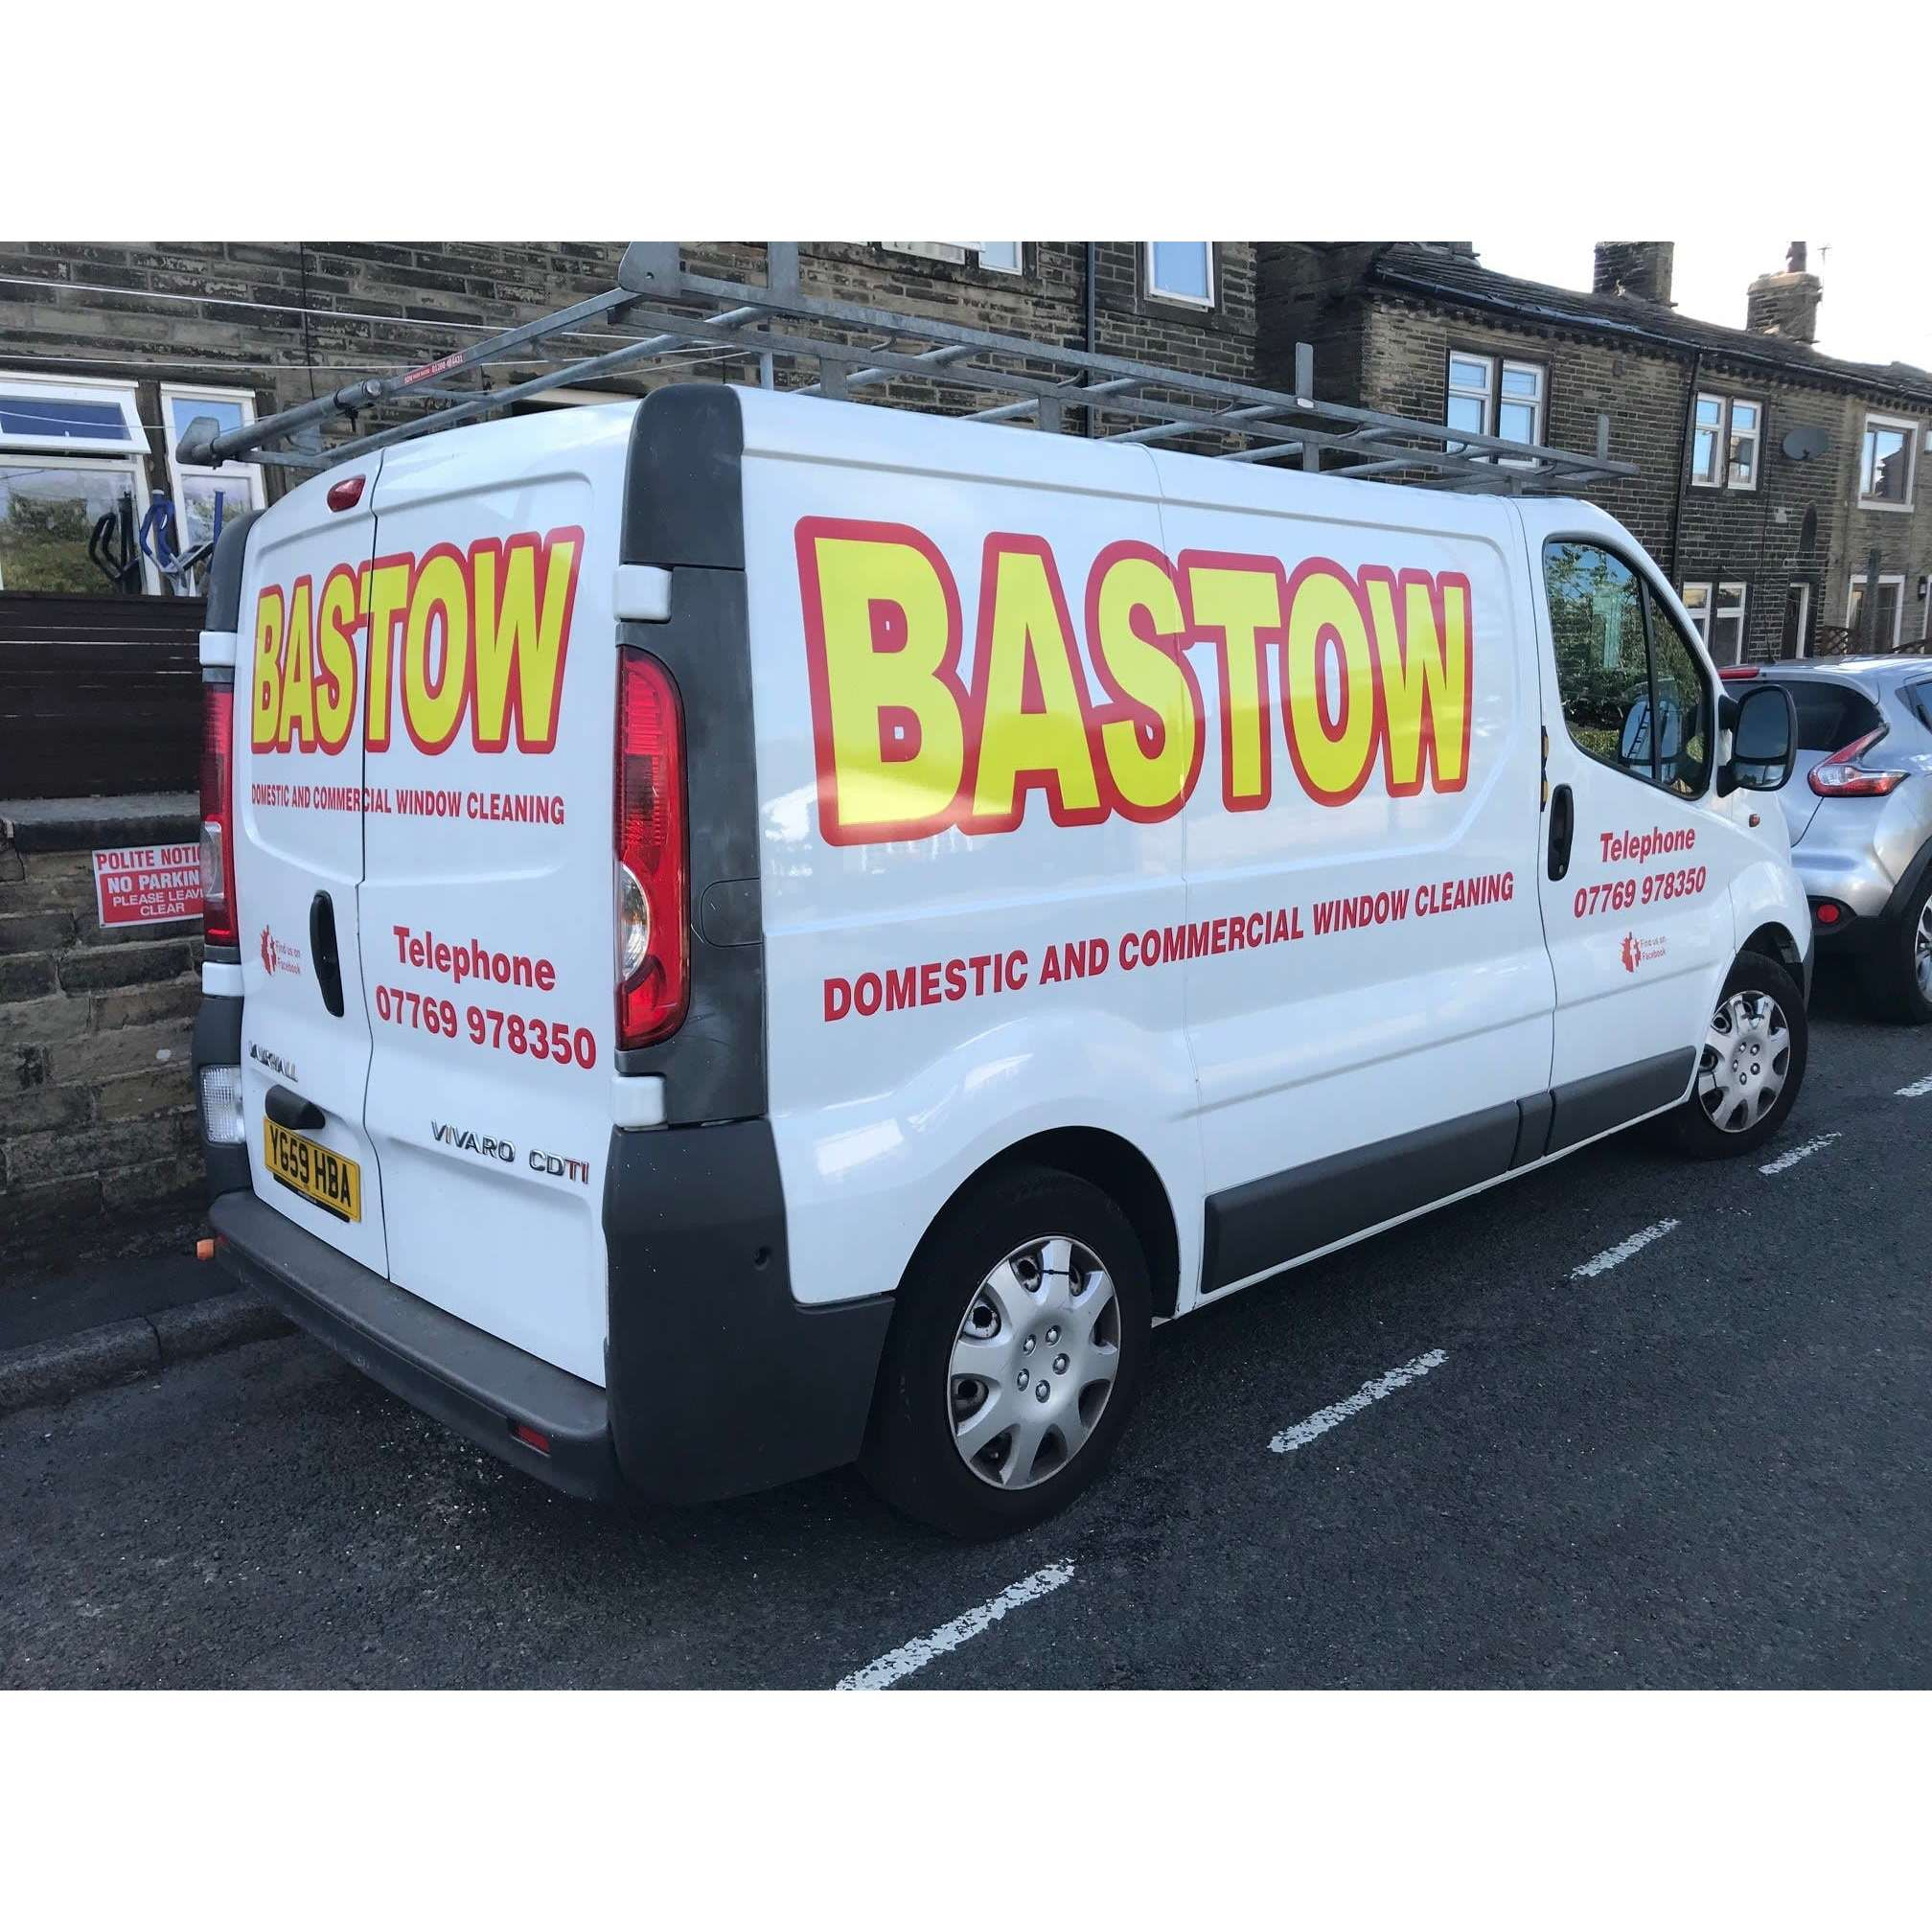 Bastow Window Cleaning - Bradford, West Yorkshire BD13 1EE - 07769 978350 | ShowMeLocal.com